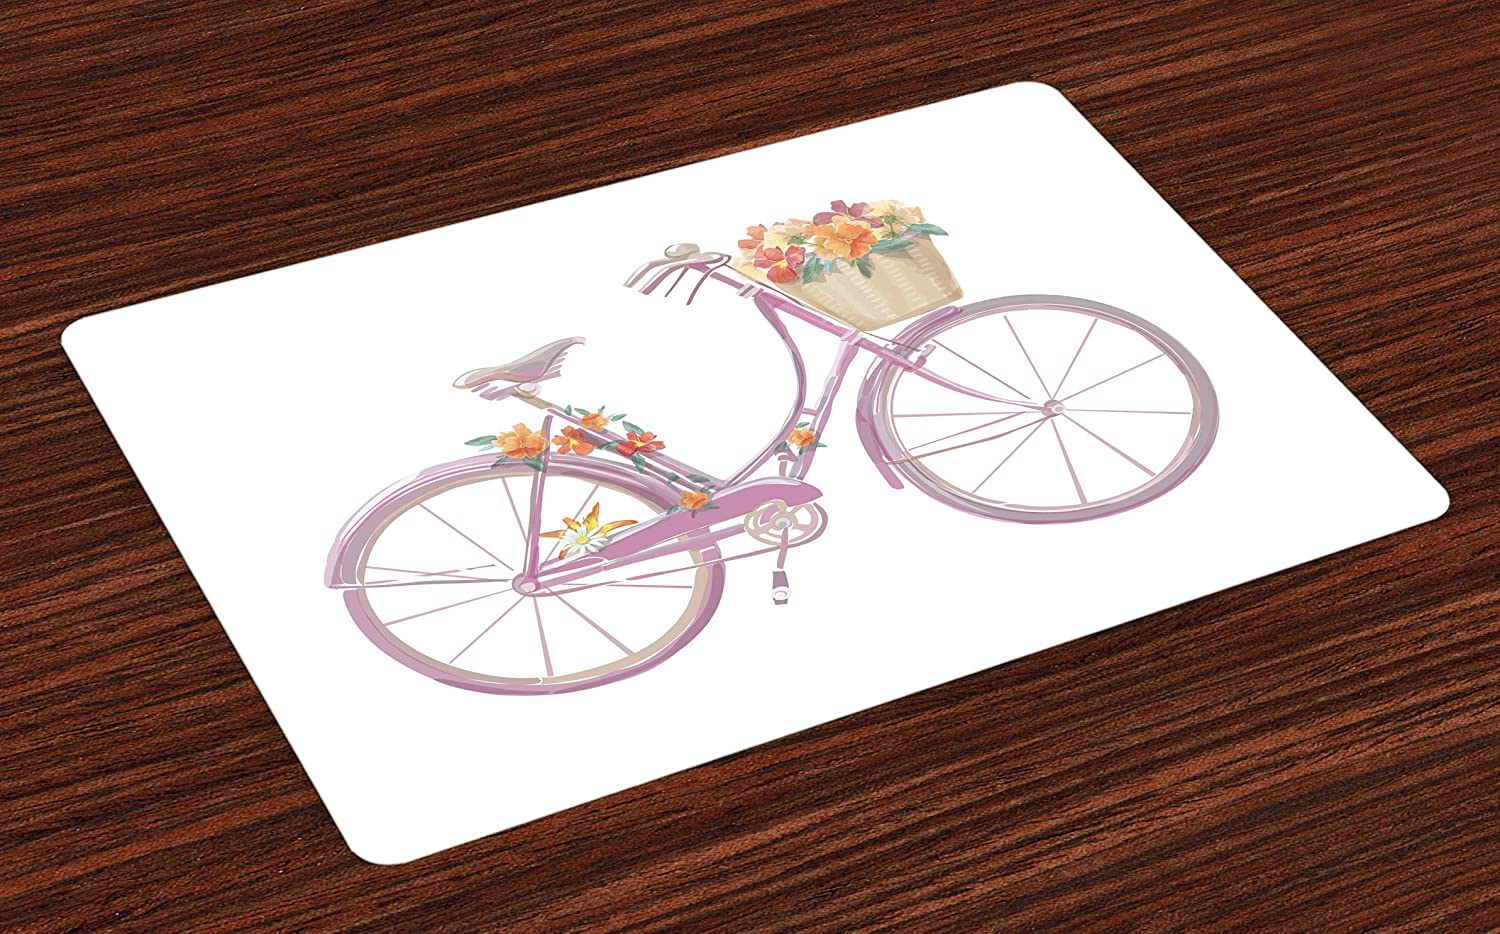 Ambesonne Bicycle Place Mats Set of 4, Watercolor Illustration of a Pink Bicycle with Flowers Romantic Vintage, Washable Fabric Placemats for Dining Room Kitchen Table Decor, Multicolor